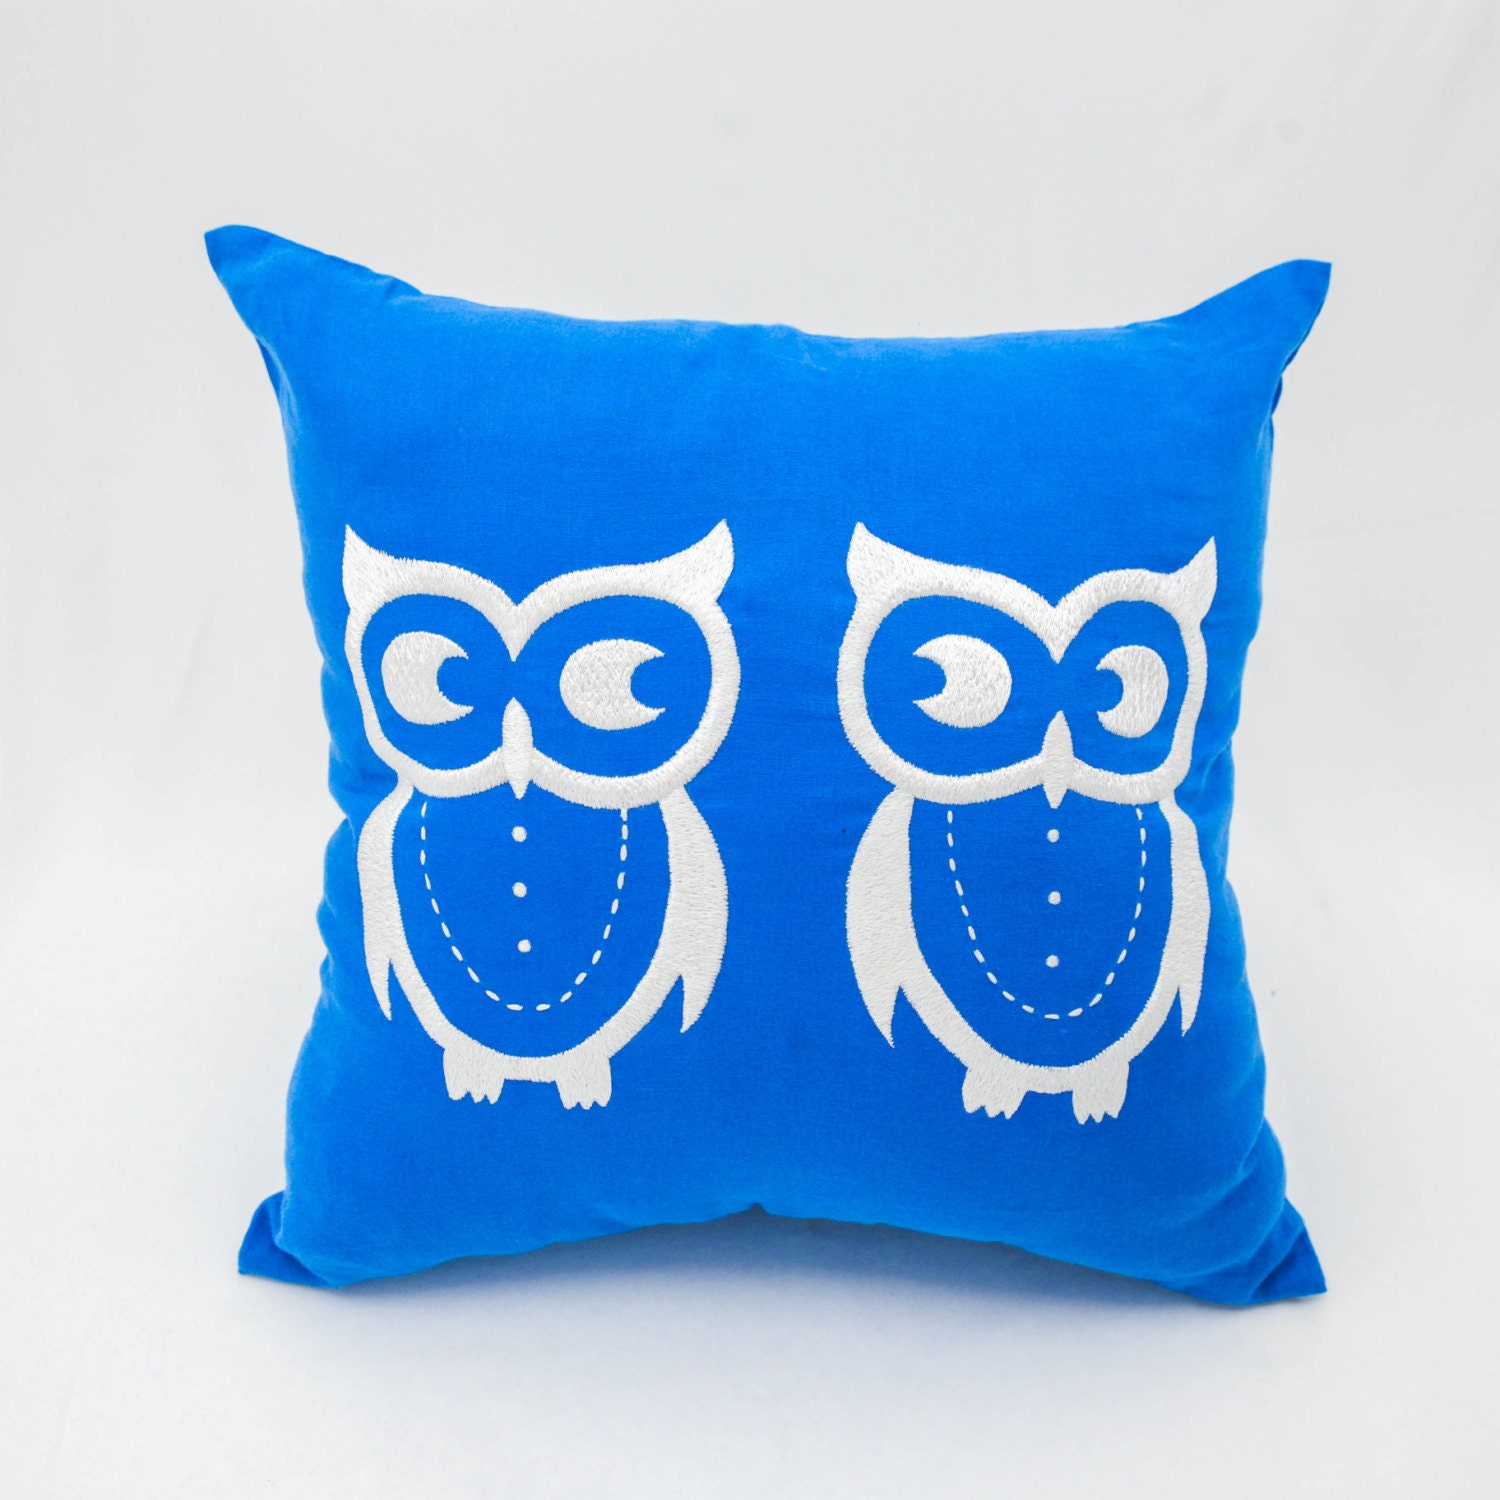 Owl Throw Pillow Covers : Owls Throw Pillow Covers Bird Decorative Pillow Owl Couch